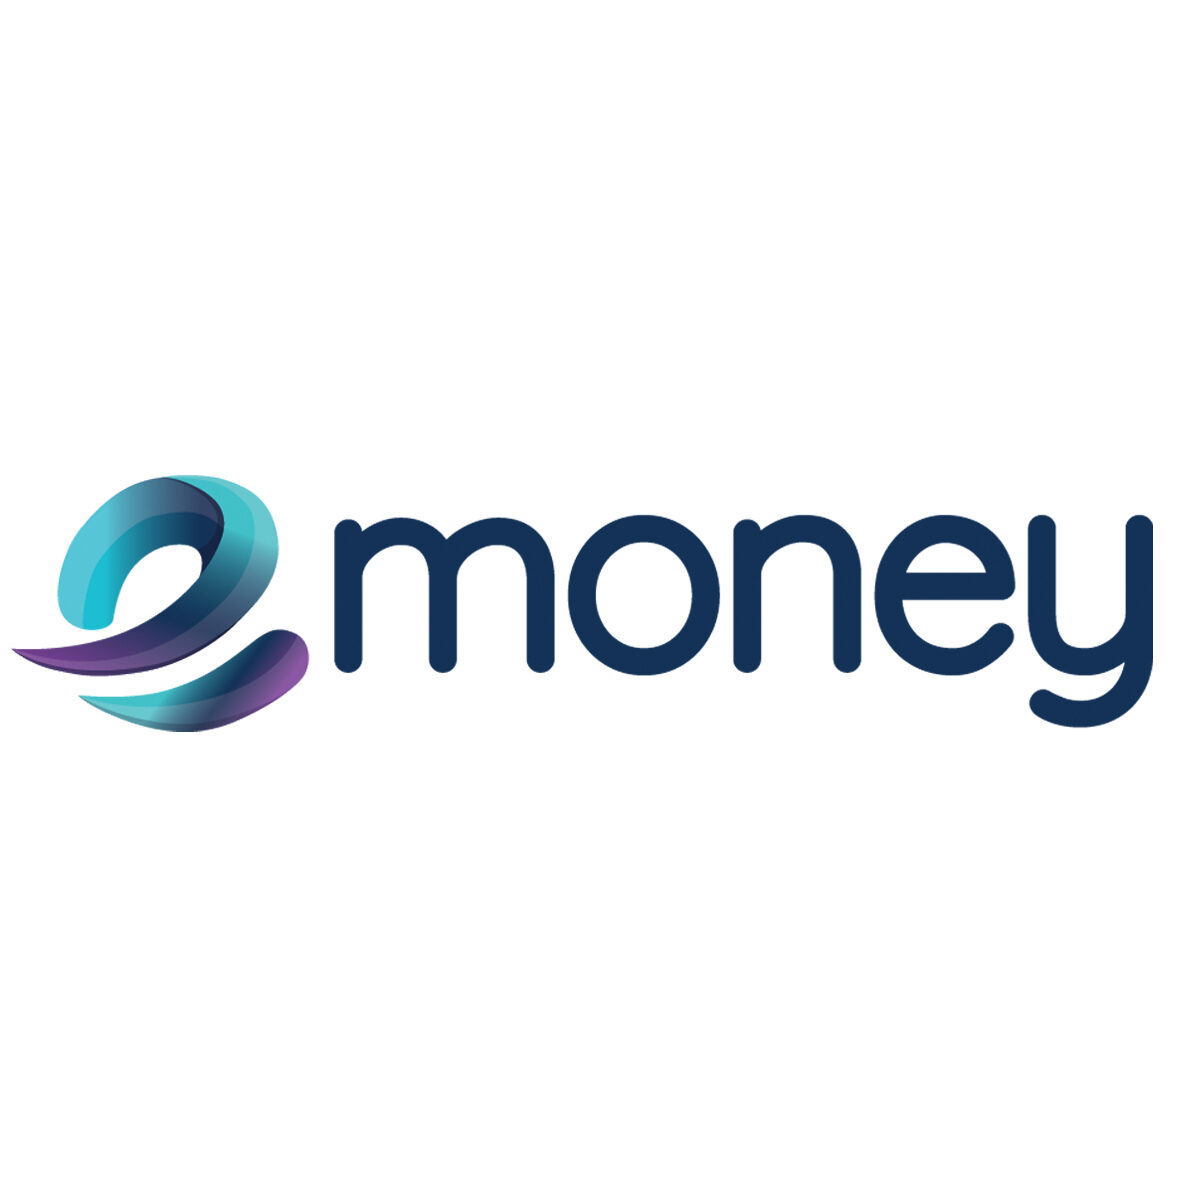 emoney logo 1200x1200 1